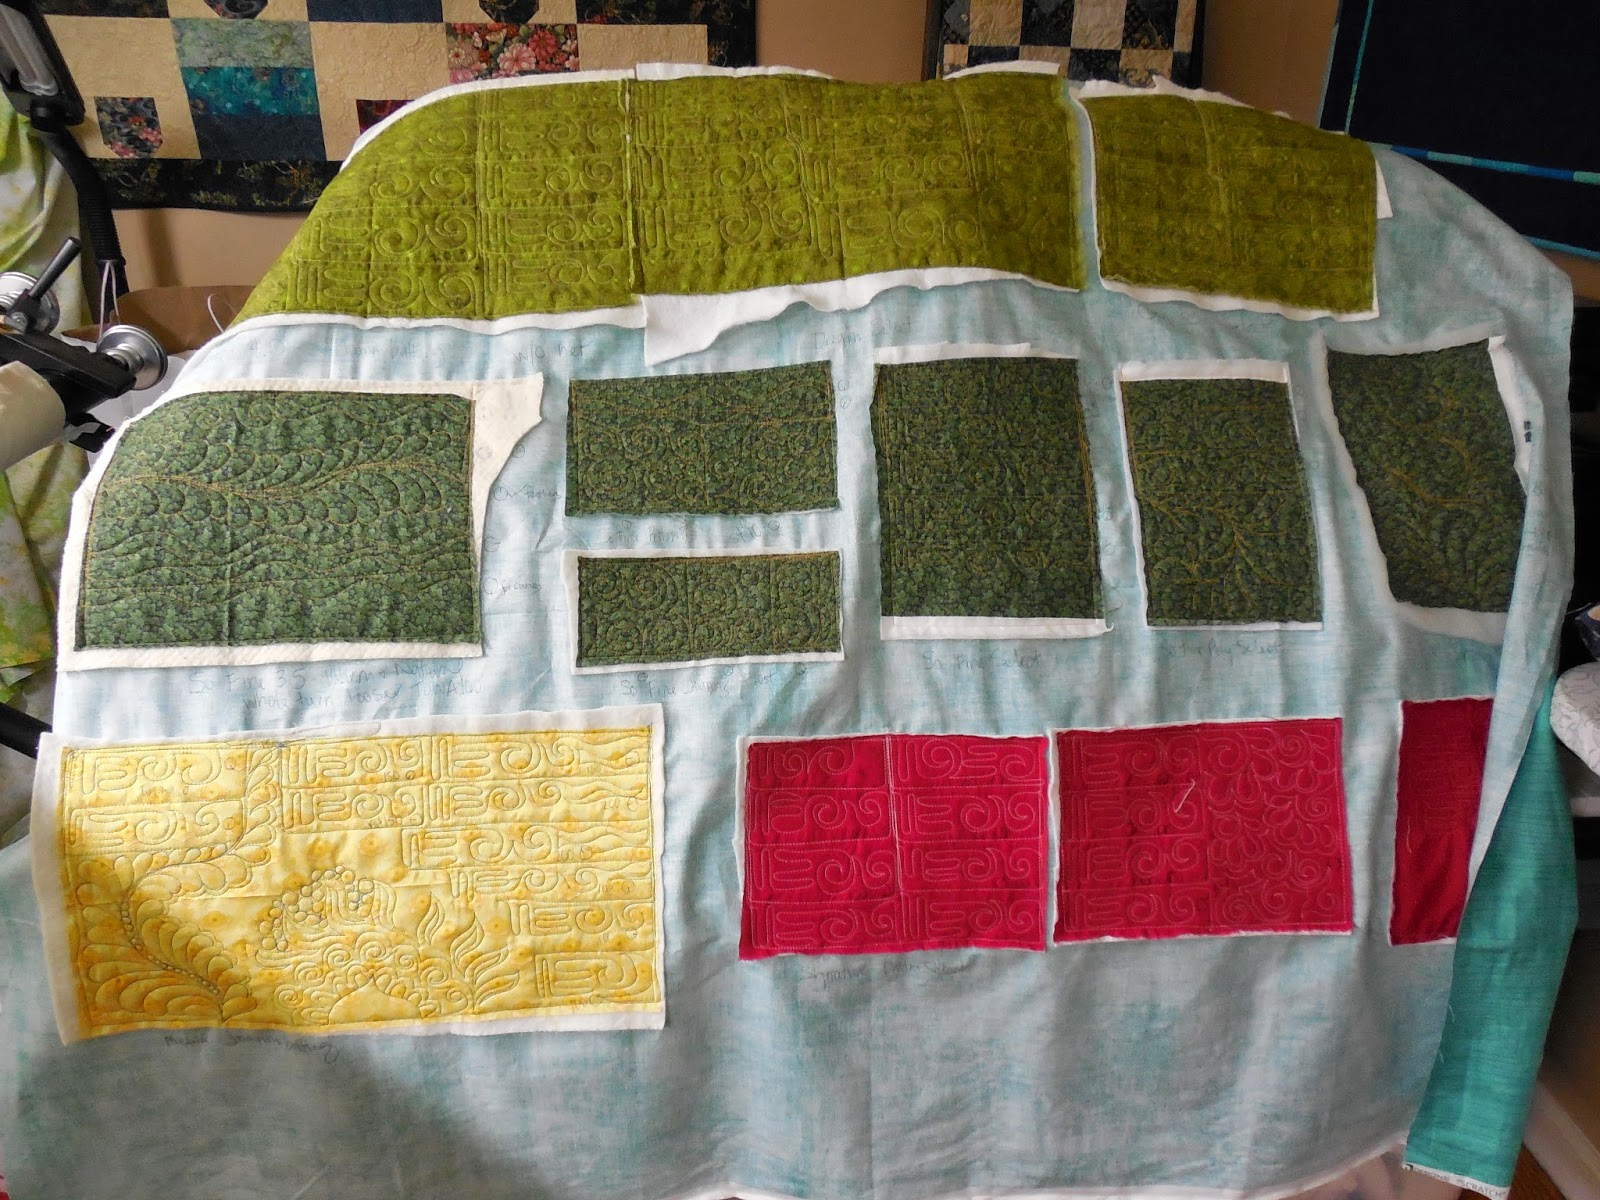 Tanderwen Quilts: Test Time and Zippered Leaders : quilt leaders - Adamdwight.com